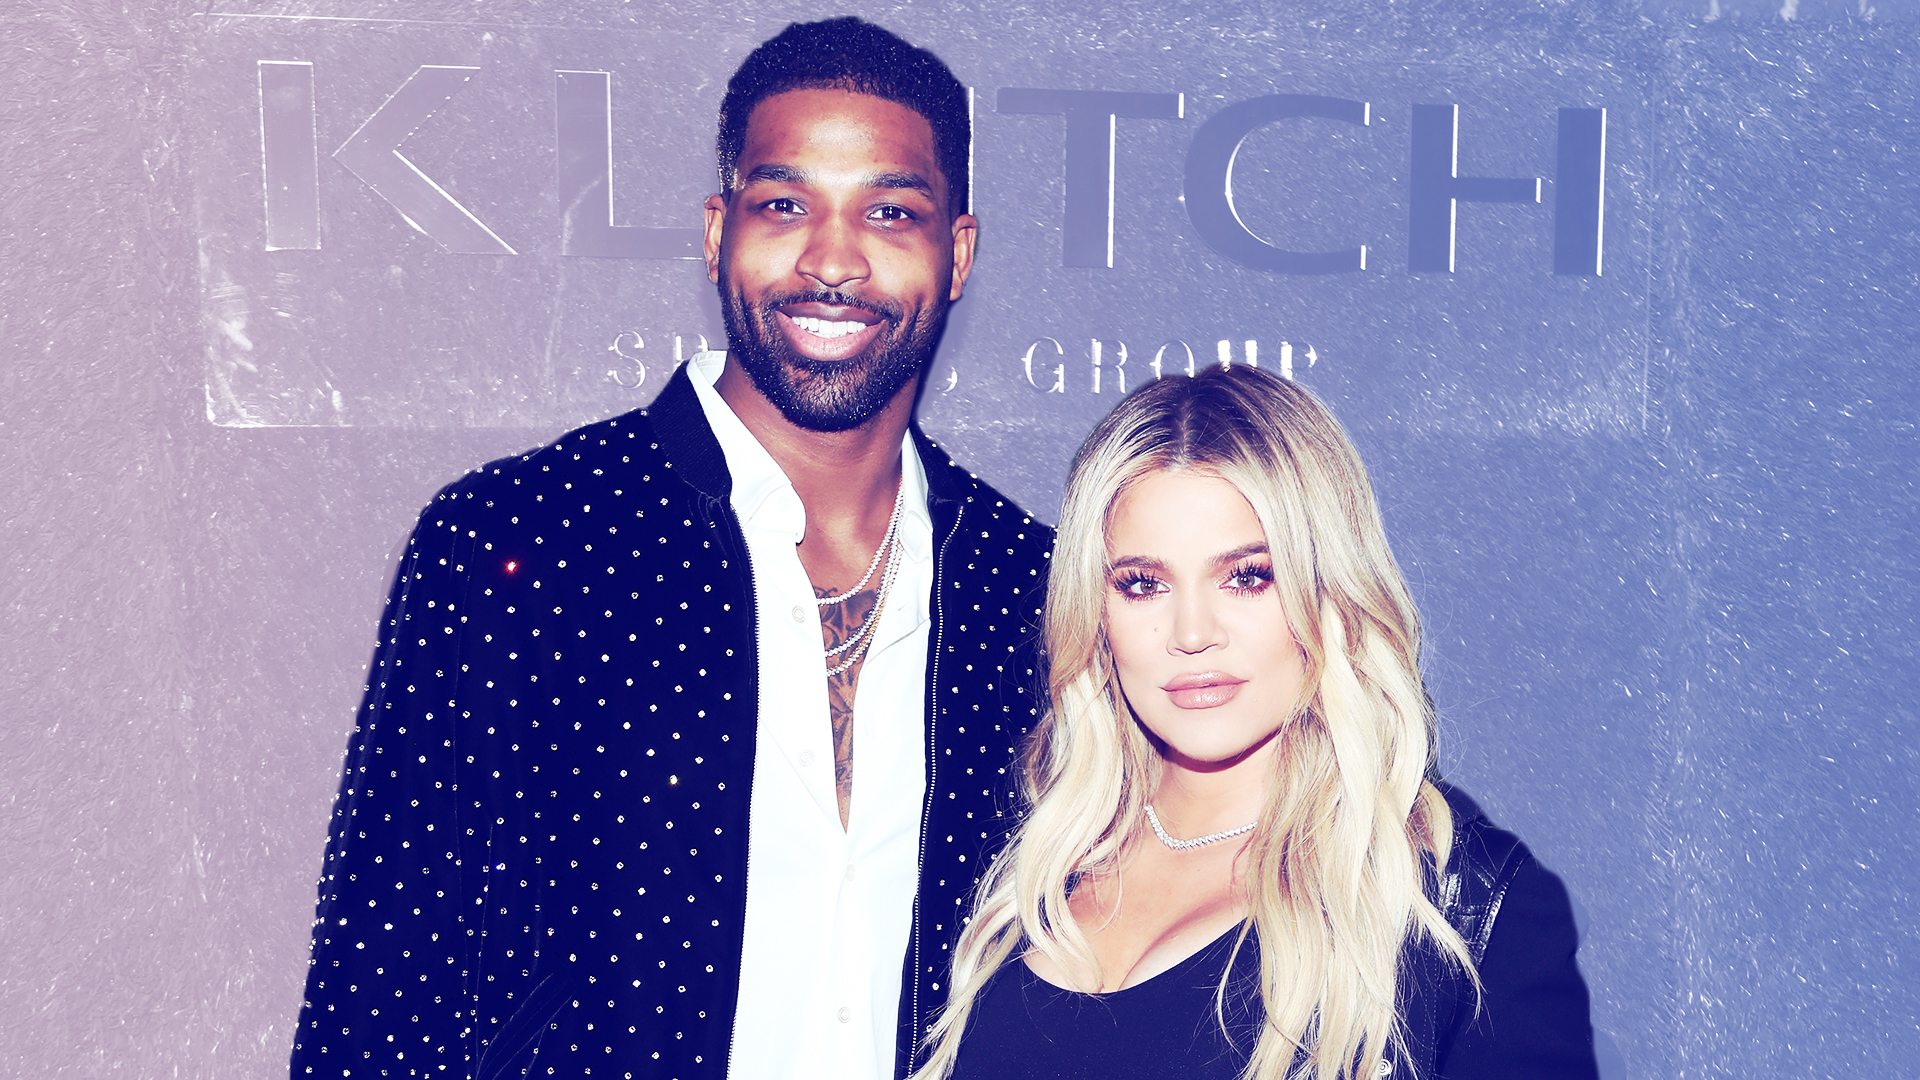 It's Official: Khloe Kardashian's Aesthetic Is Matching Her Baby